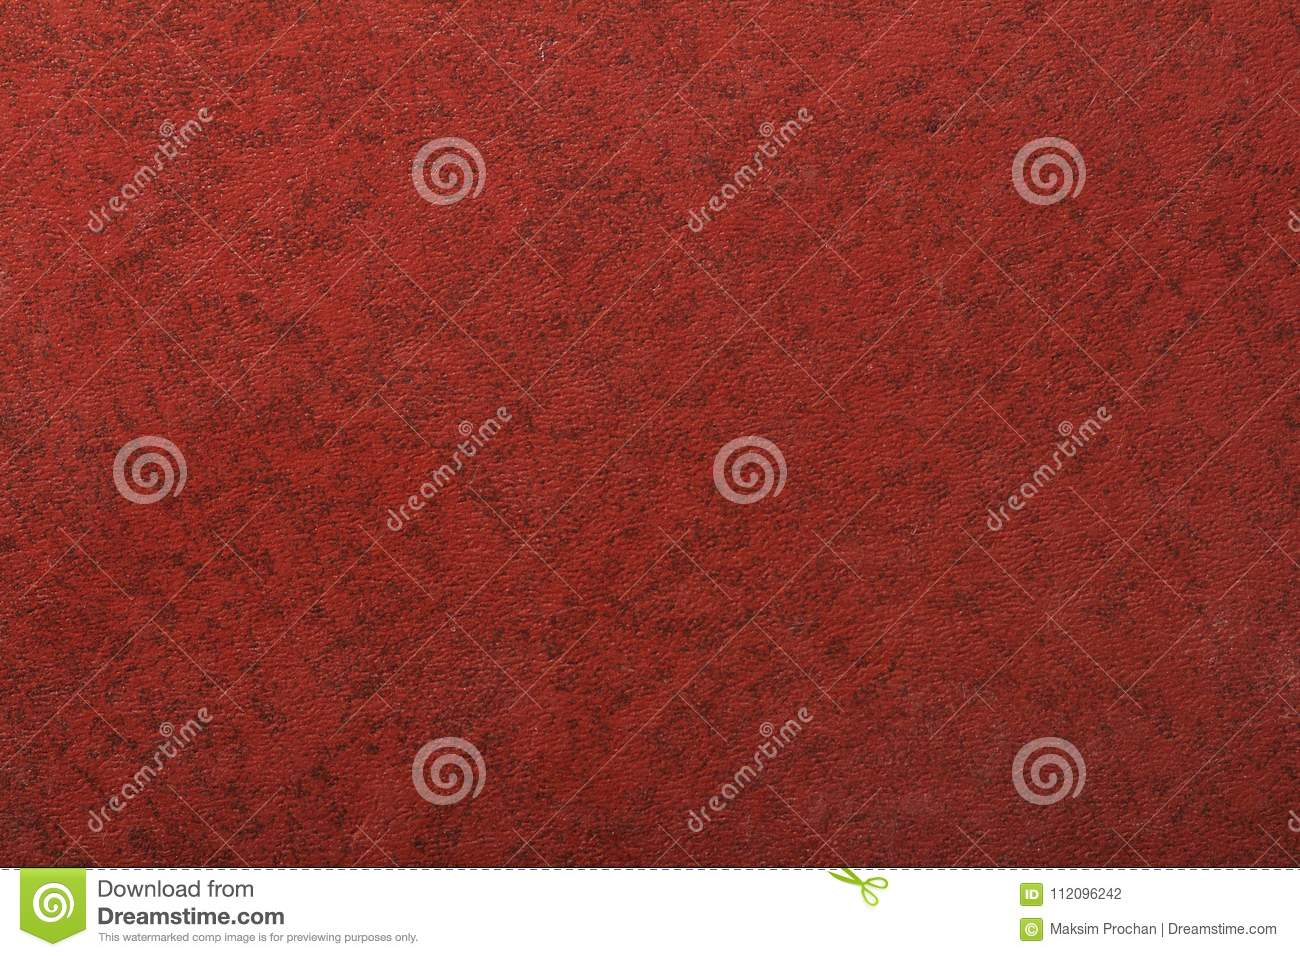 Background colorsd leather texture